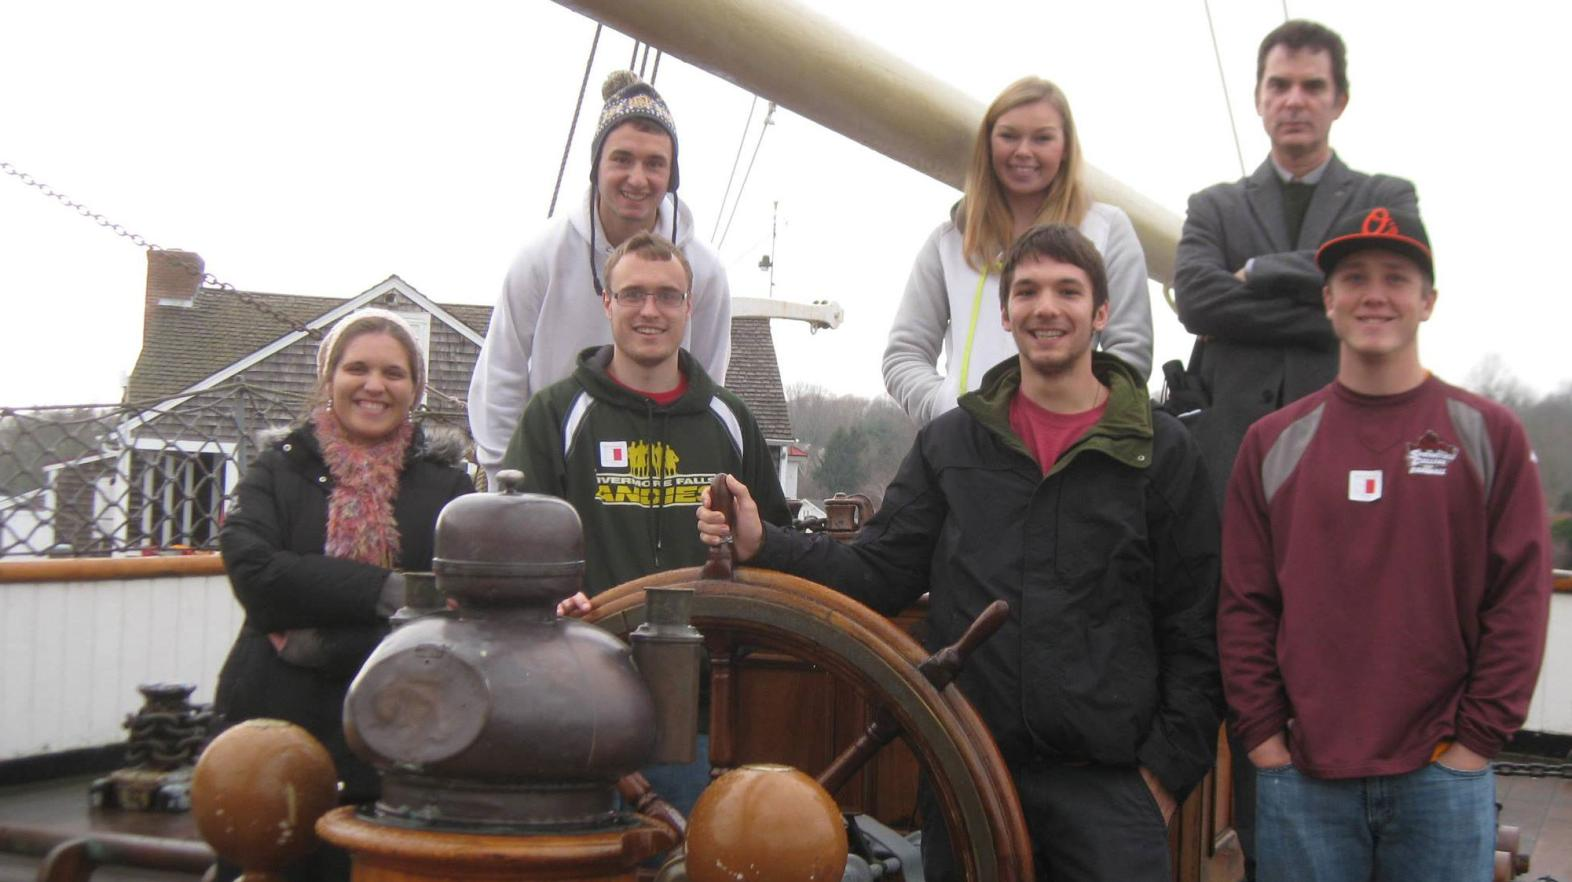 Students pose during a field trip to Mystic Seaport where at Springfield College alumna is employed.